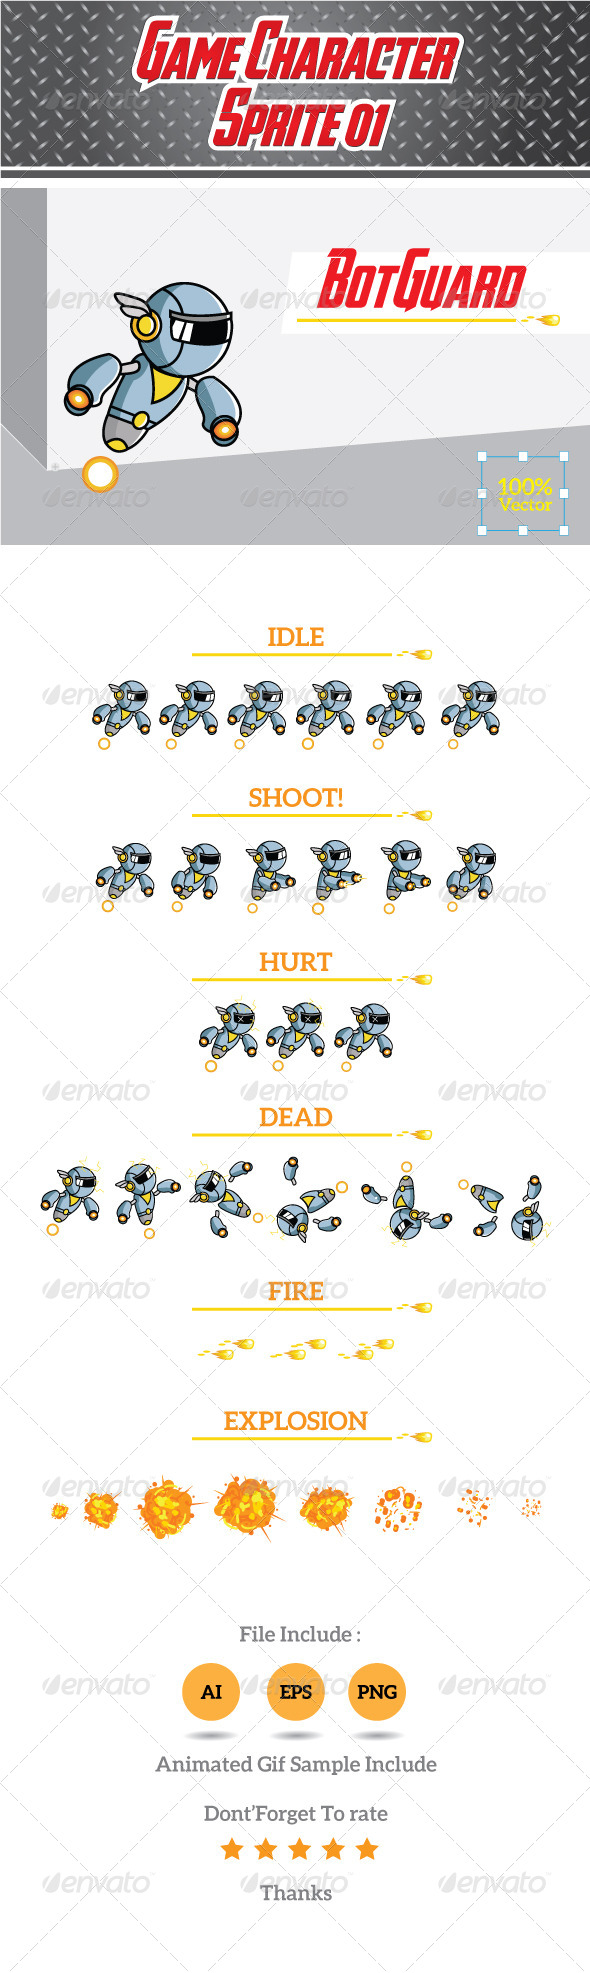 Game Character Sprite 01- BotGuard - Sprites Game Assets